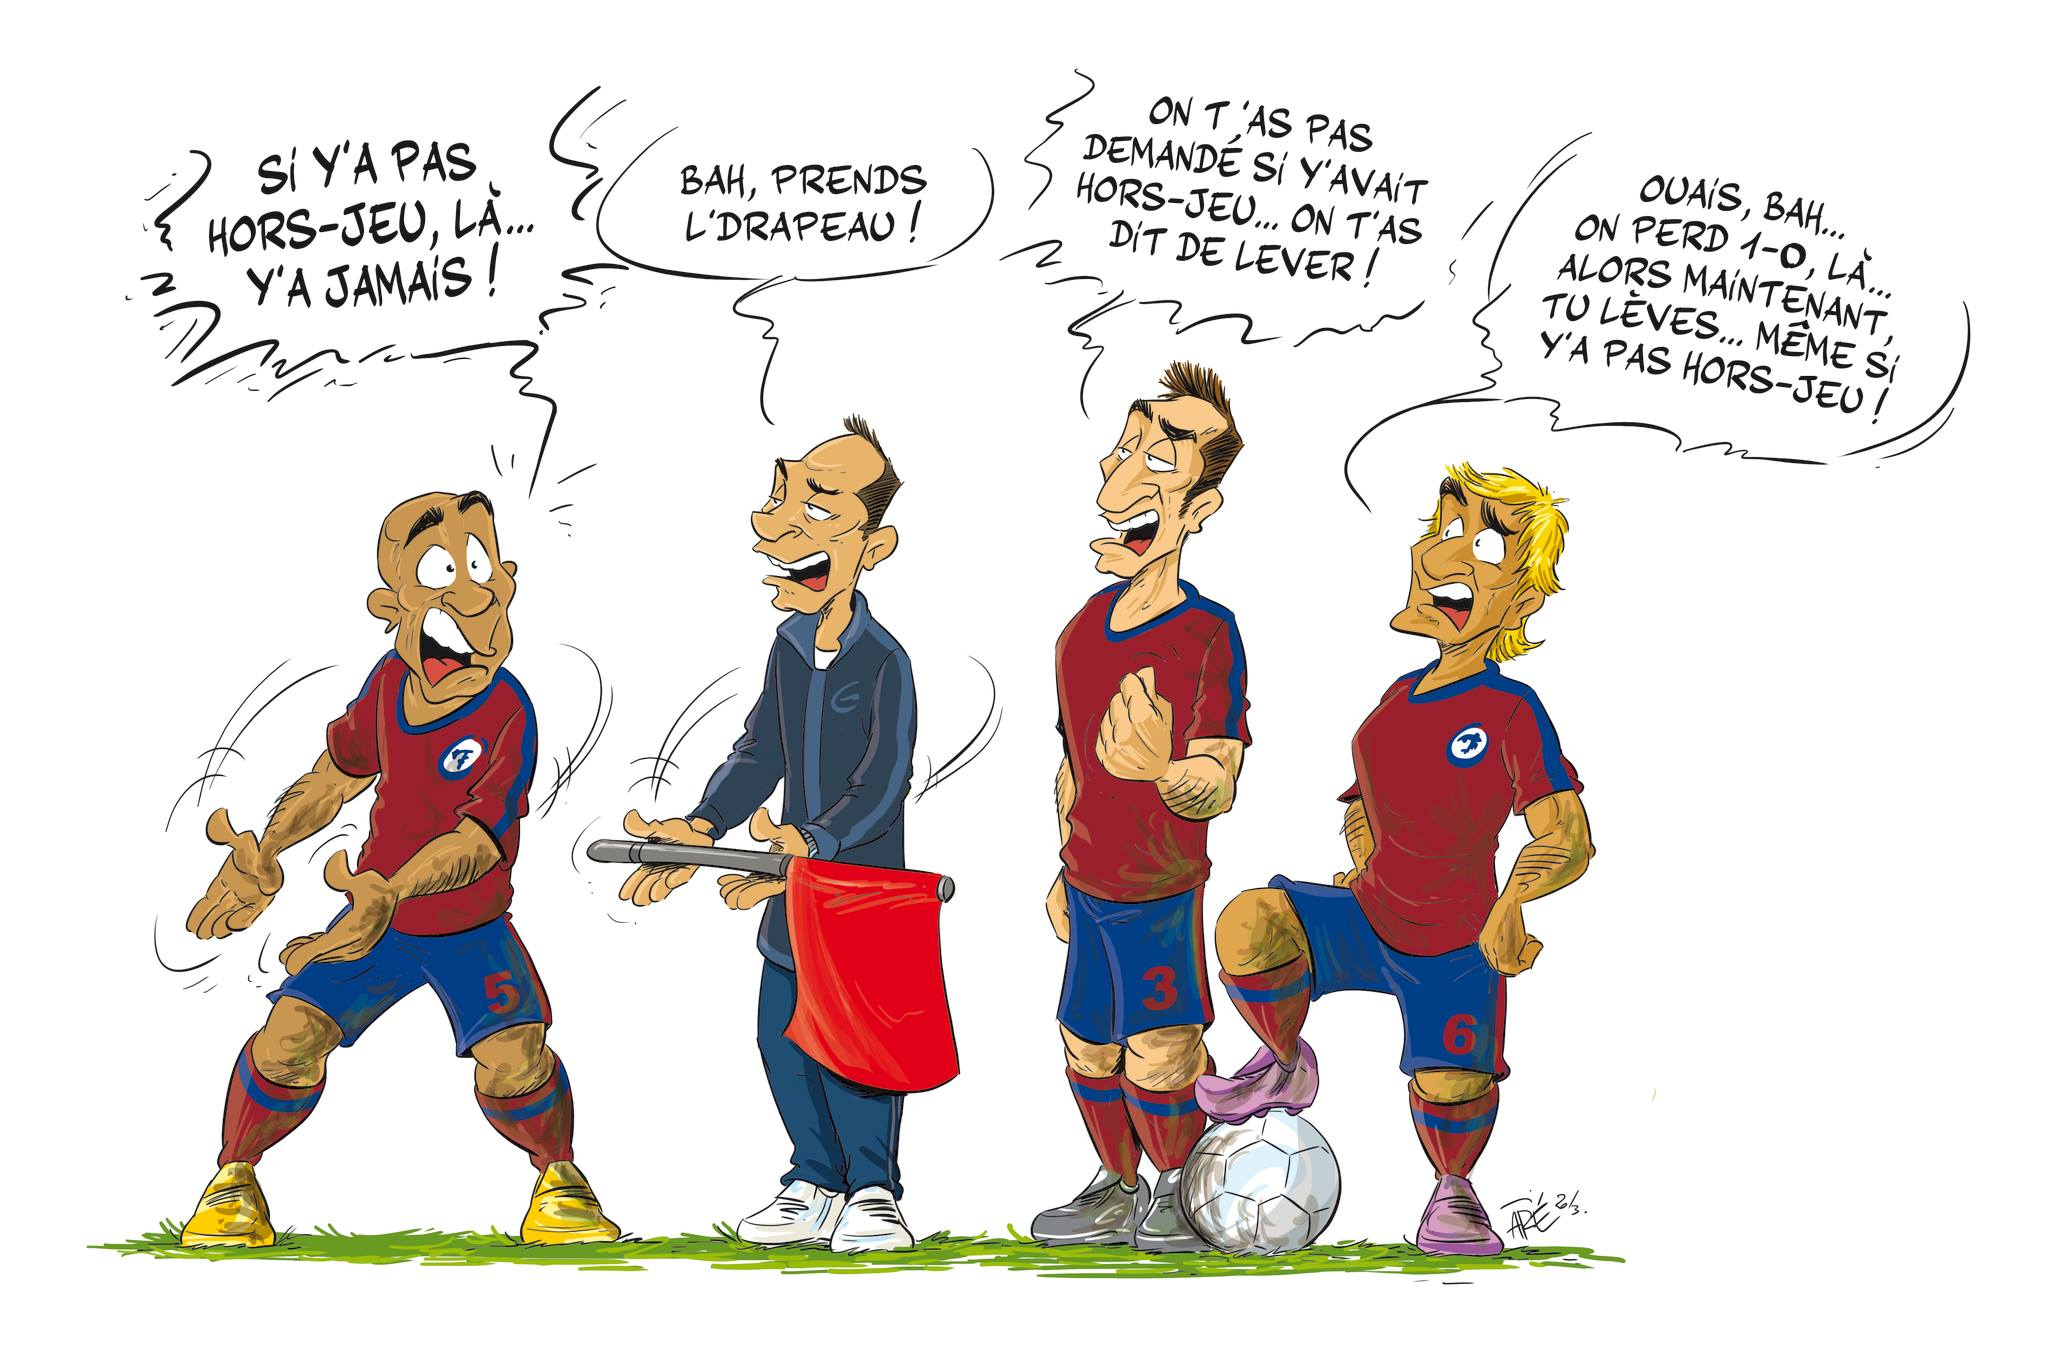 Les Lois Du Jeu - Club Football Entente Sarras Sports Saint avec Jeux De Foot Gardien De But